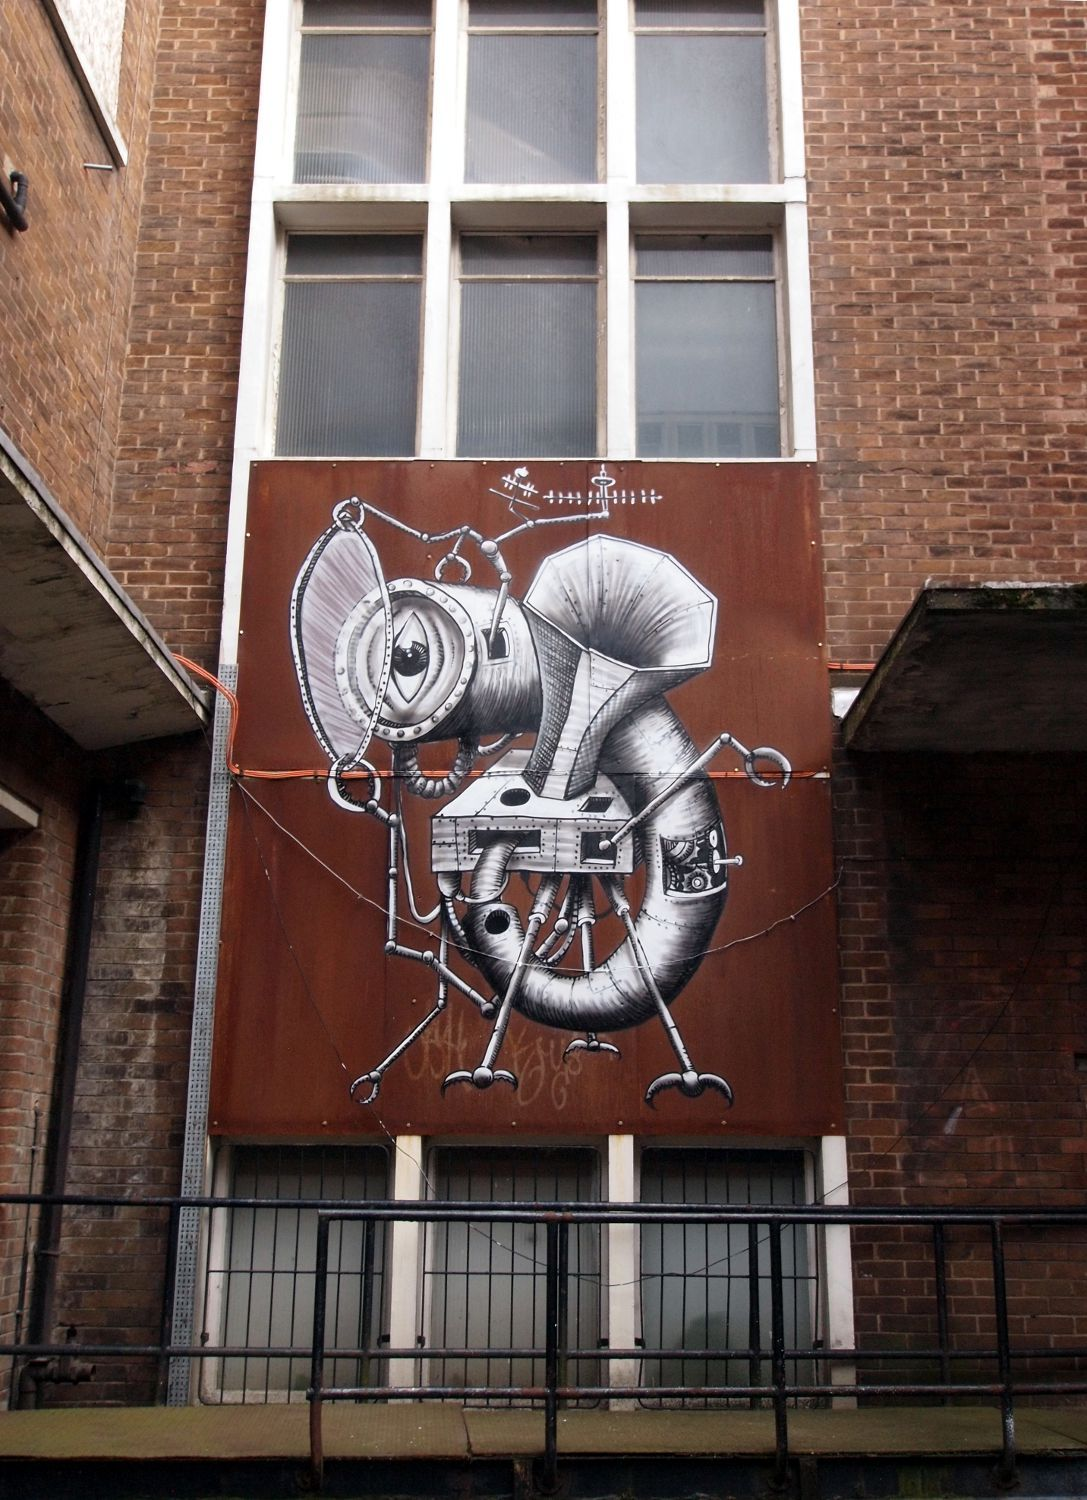 Two things I love. Phlegm and rusty old buildings.